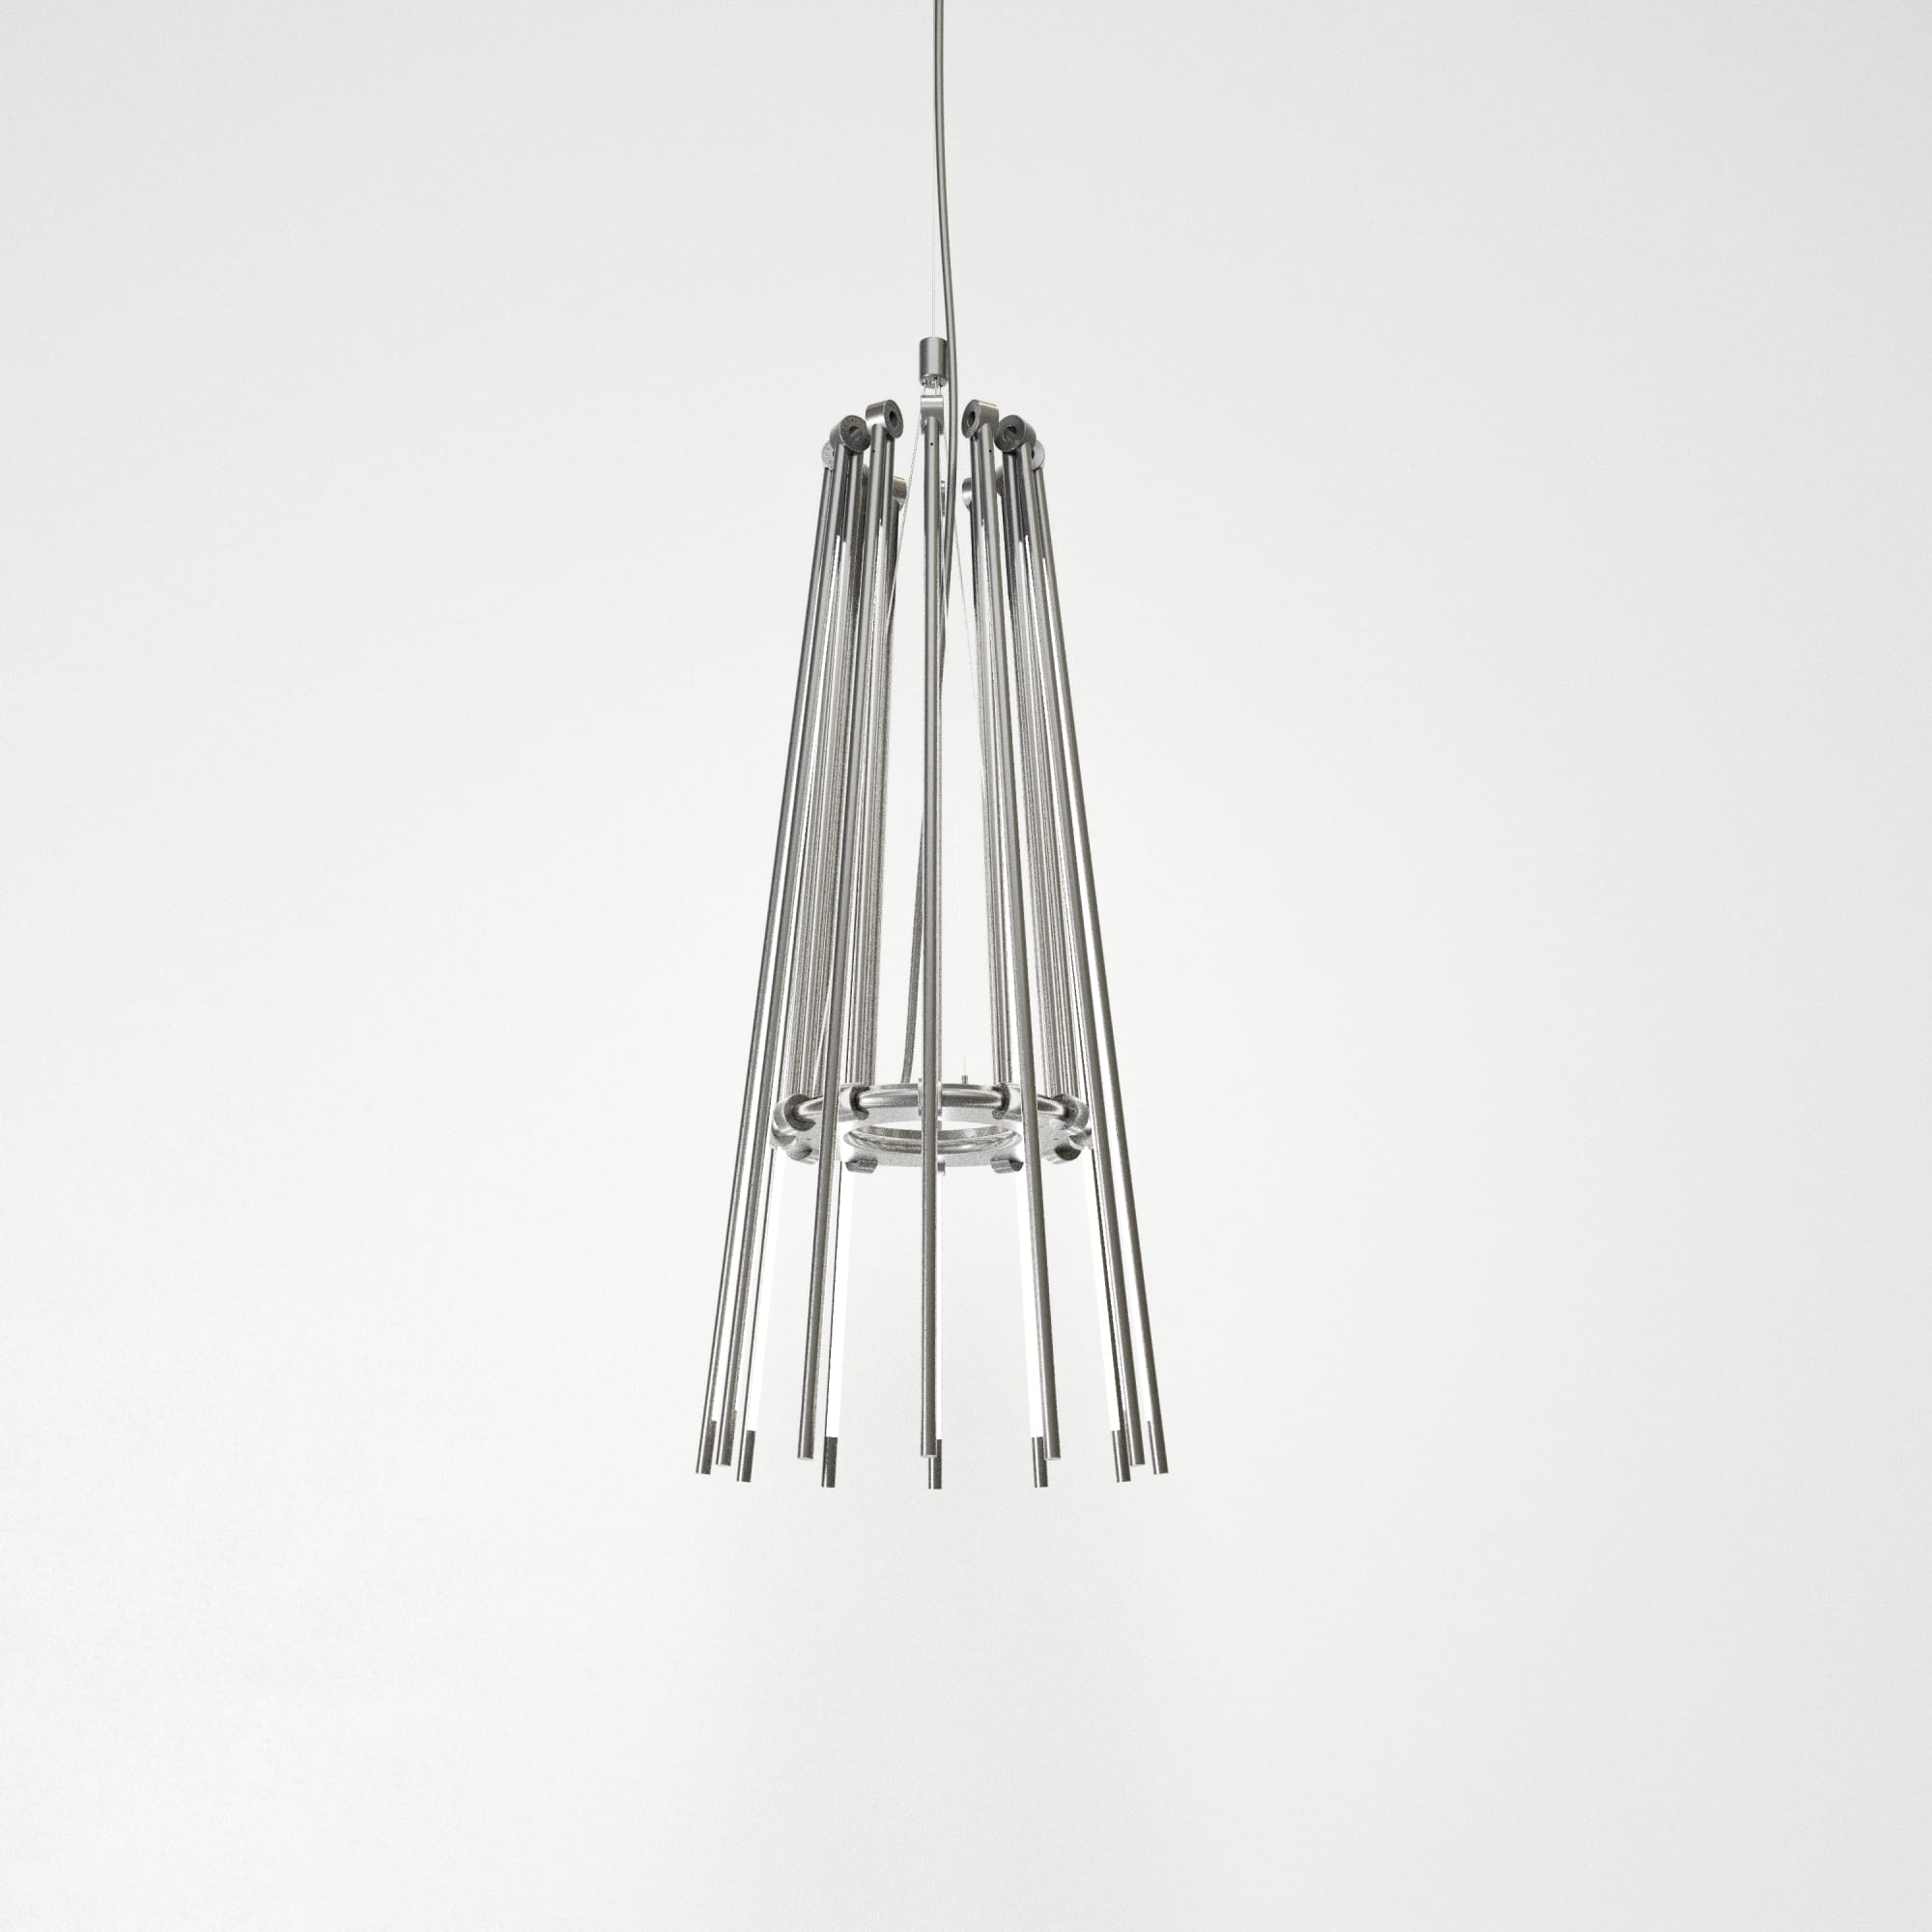 Chandeliers by Juniper at 68 33rd Street, Brooklyn, NY,, Brooklyn - THIN Chandelier